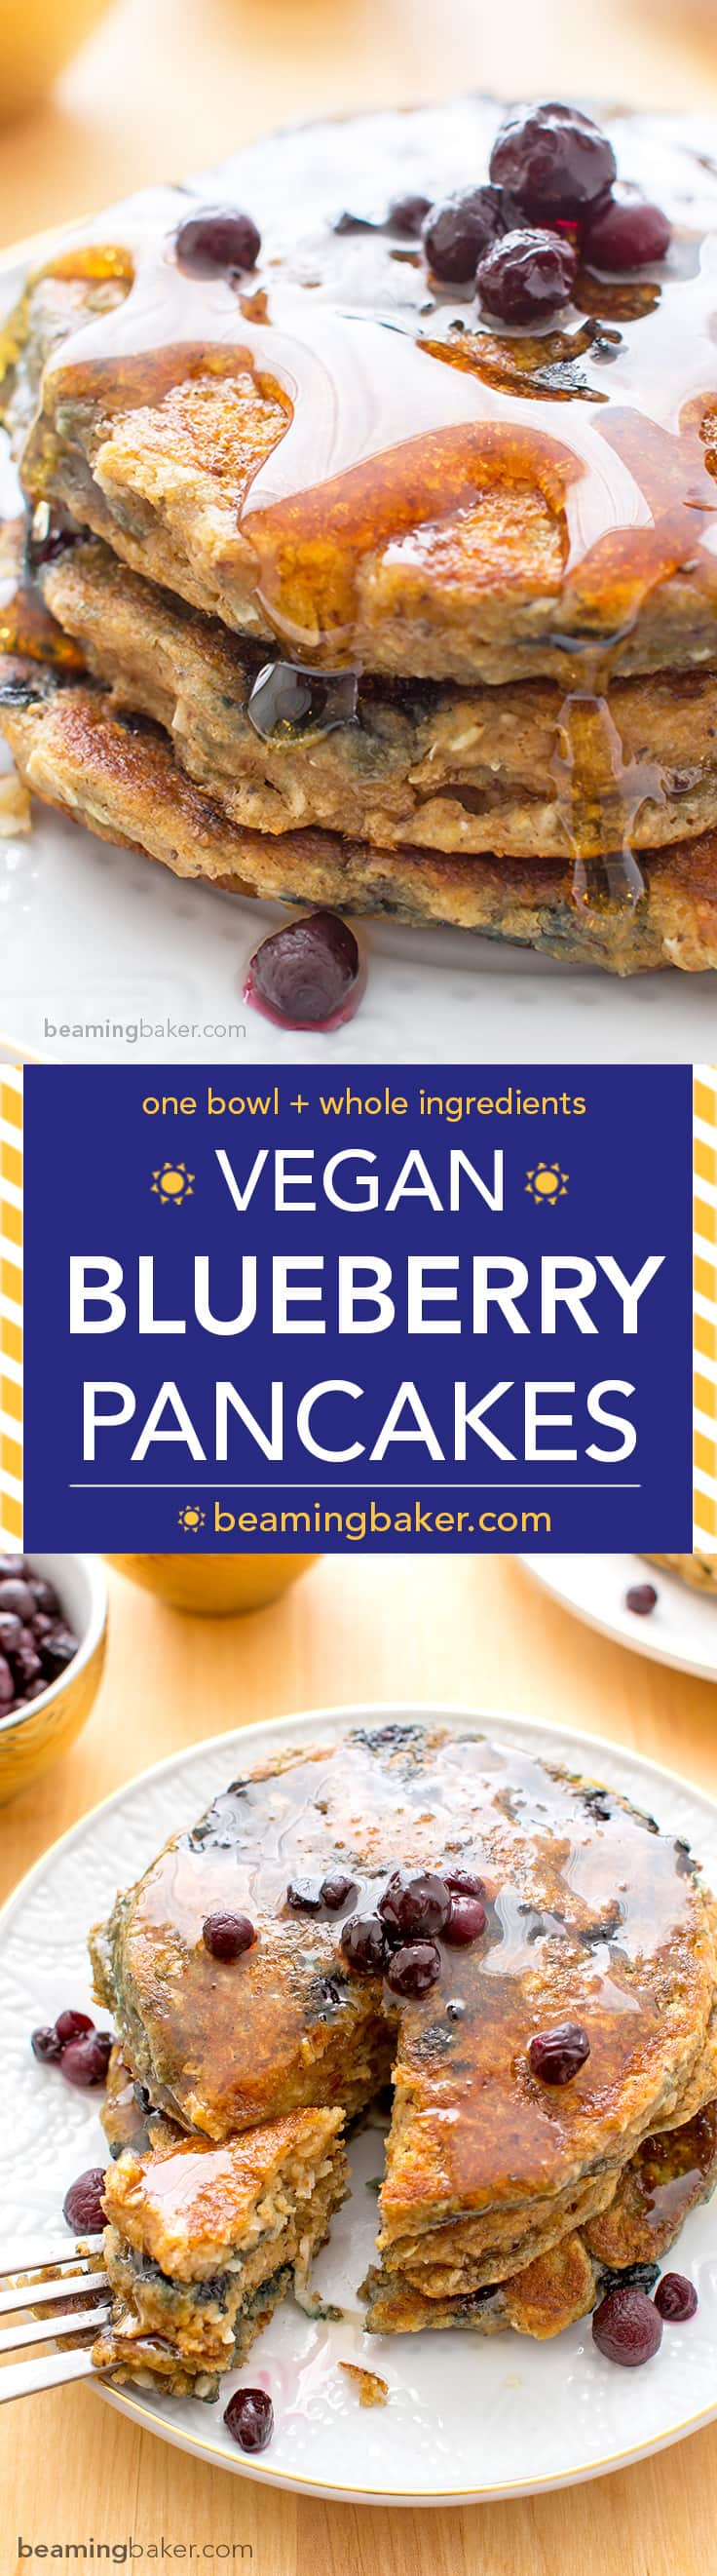 Vegan Blueberry Pancakes: A one bowl recipe for fluffy, moist blueberry pancakes that are perfect for a cozy breakfast or brunch. BEAMINGBAKER.COM #Vegan #OneBowl